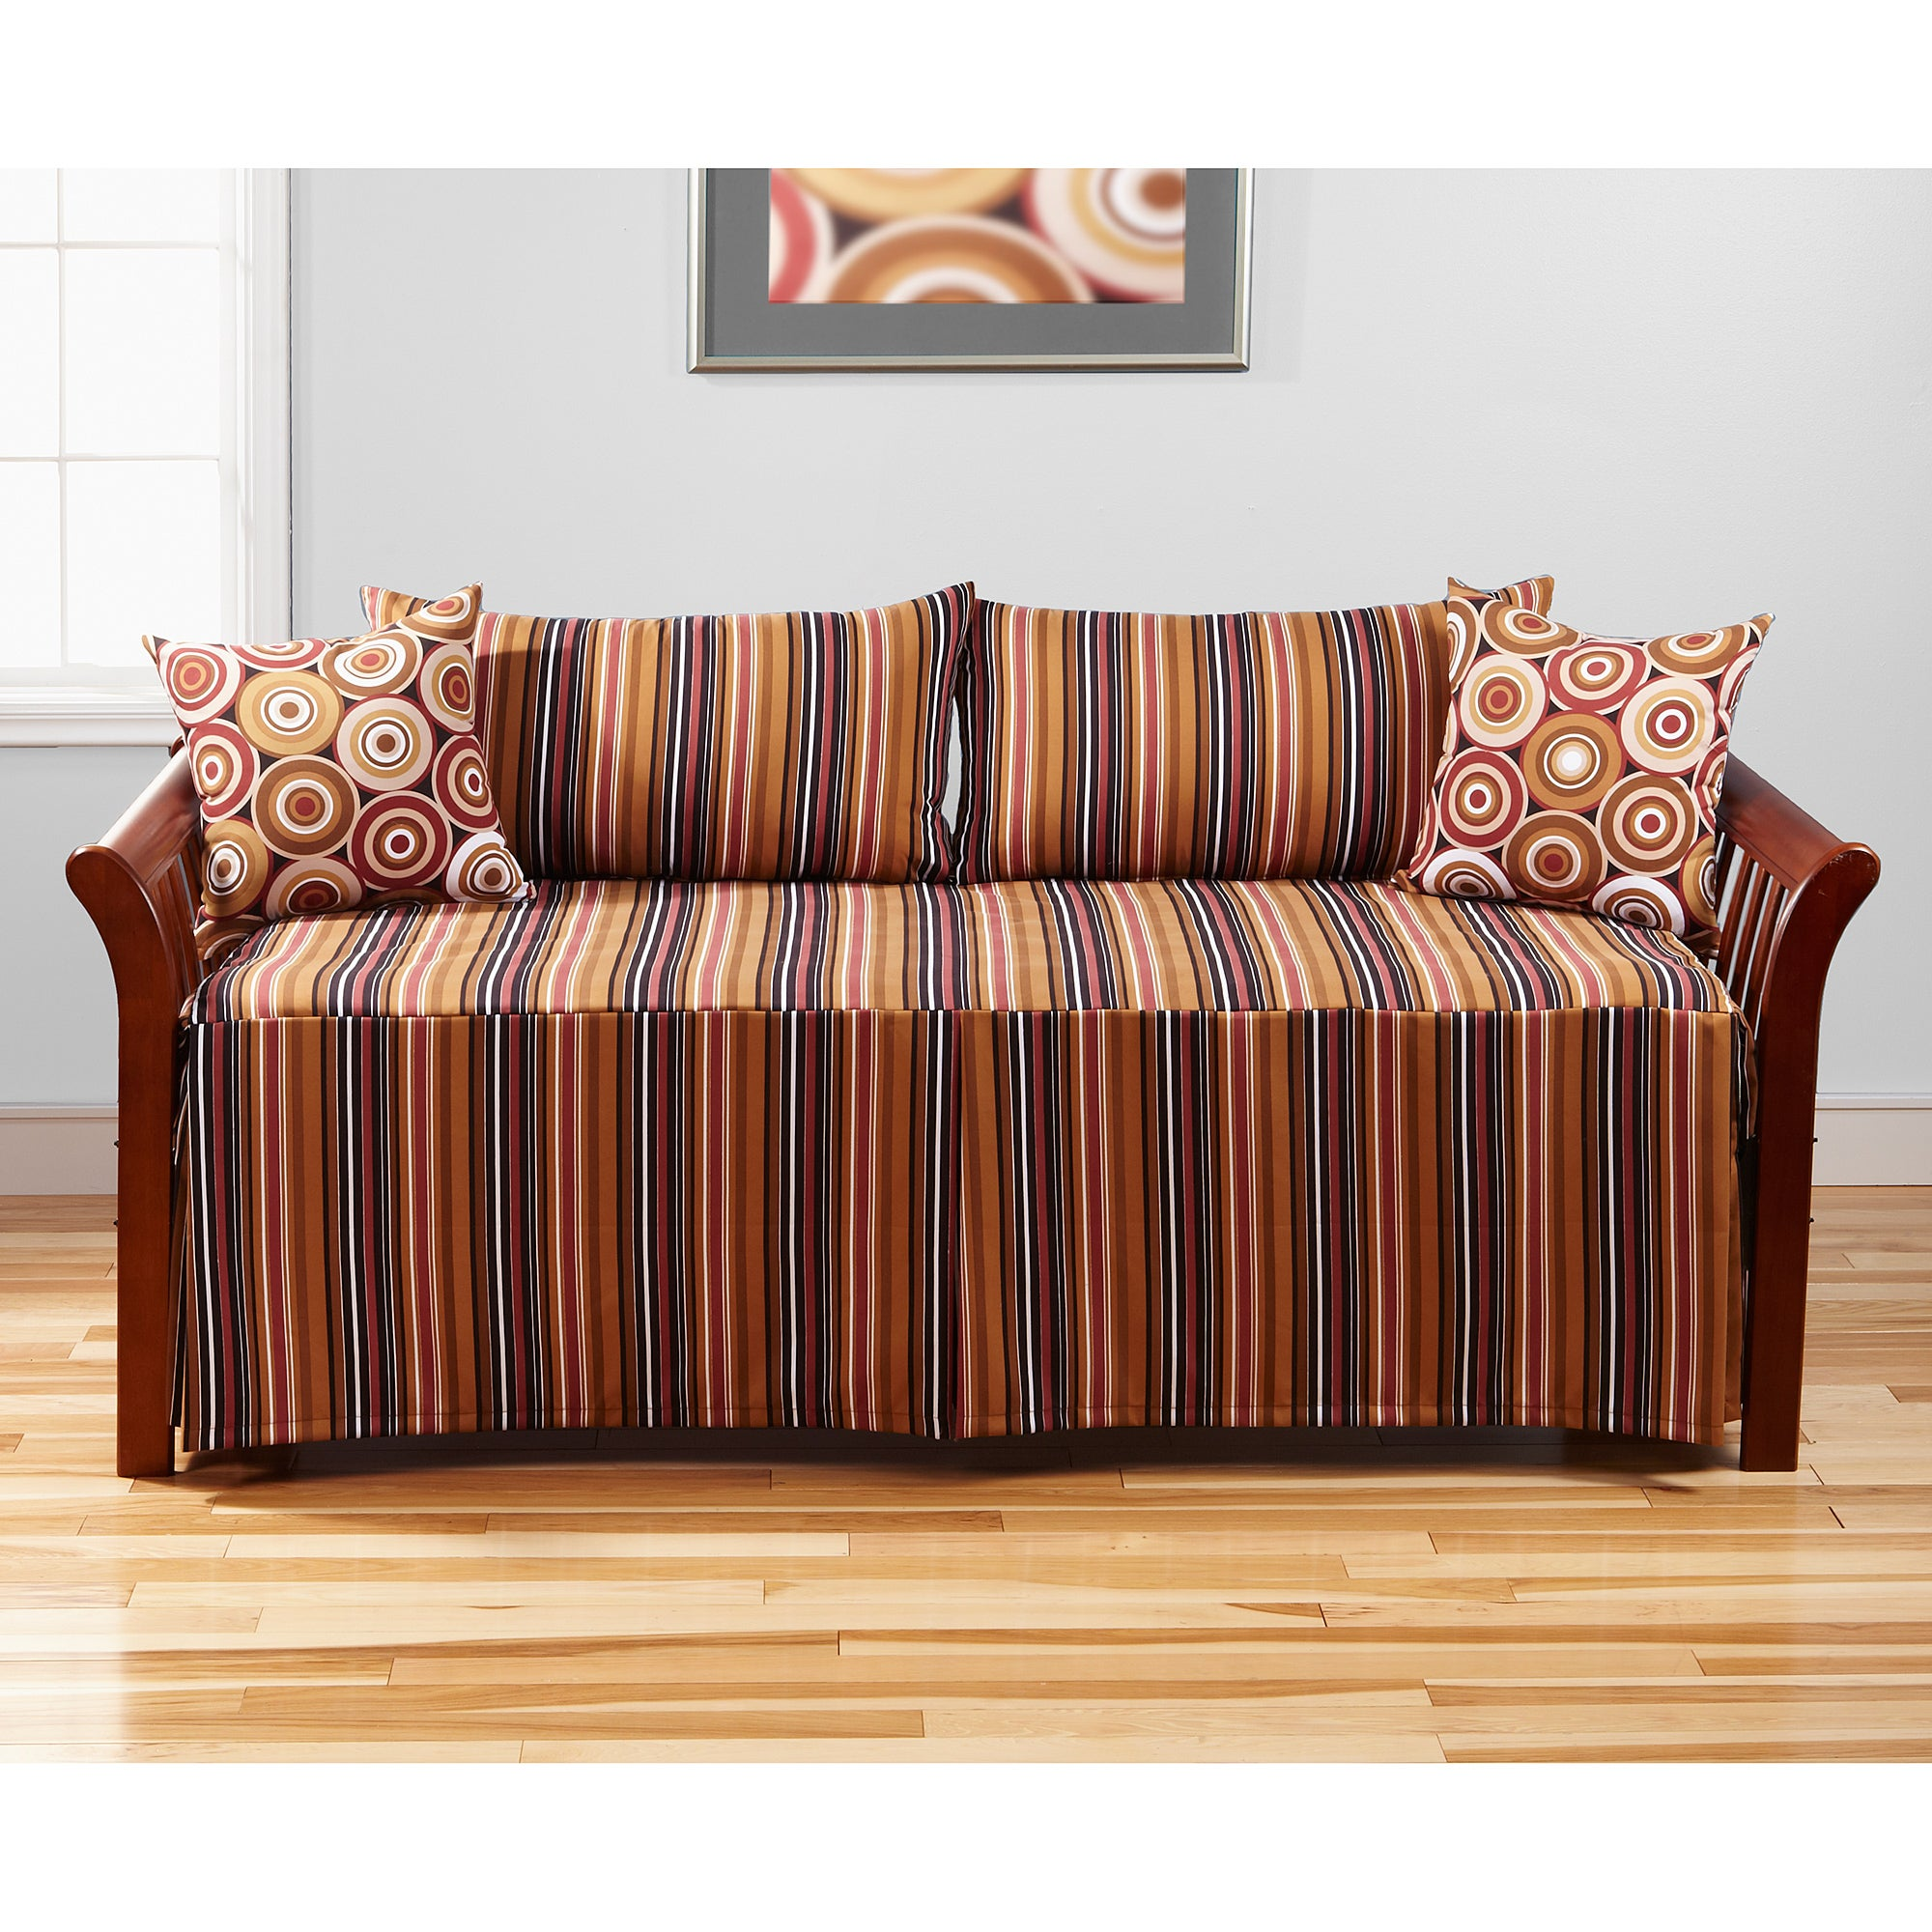 Rockin Stripe 5-piece Contemporary Colorful Polyester Daybed Set